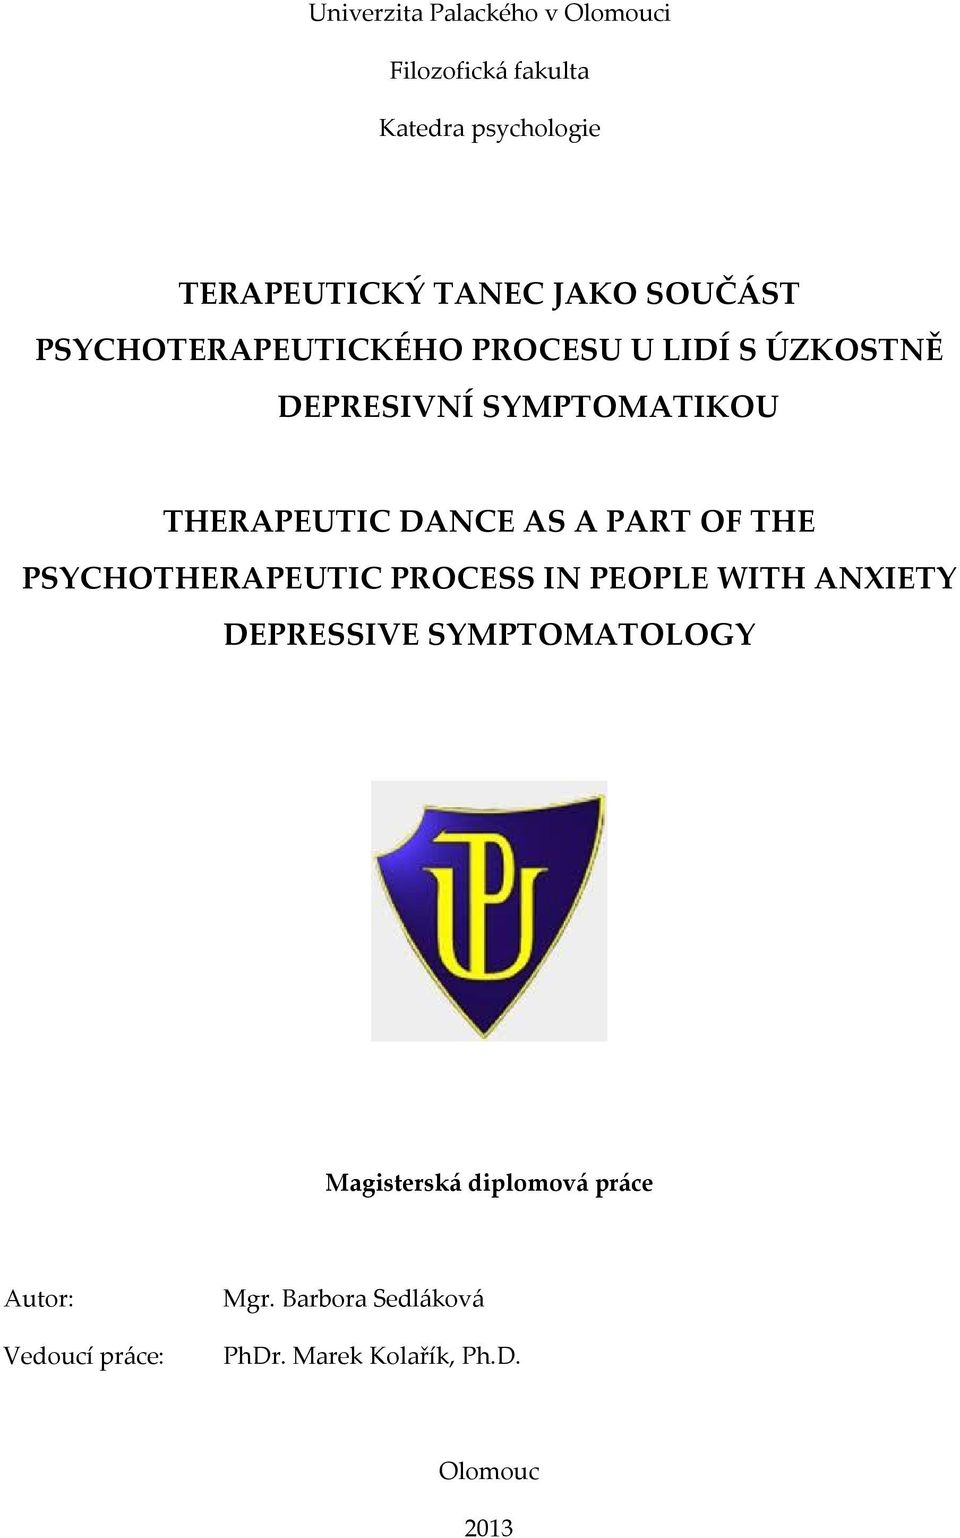 AS A PART OF THE PSYCHOTHERAPEUTIC PROCESS IN PEOPLE WITH ANXIETY DEPRESSIVE SYMPTOMATOLOGY